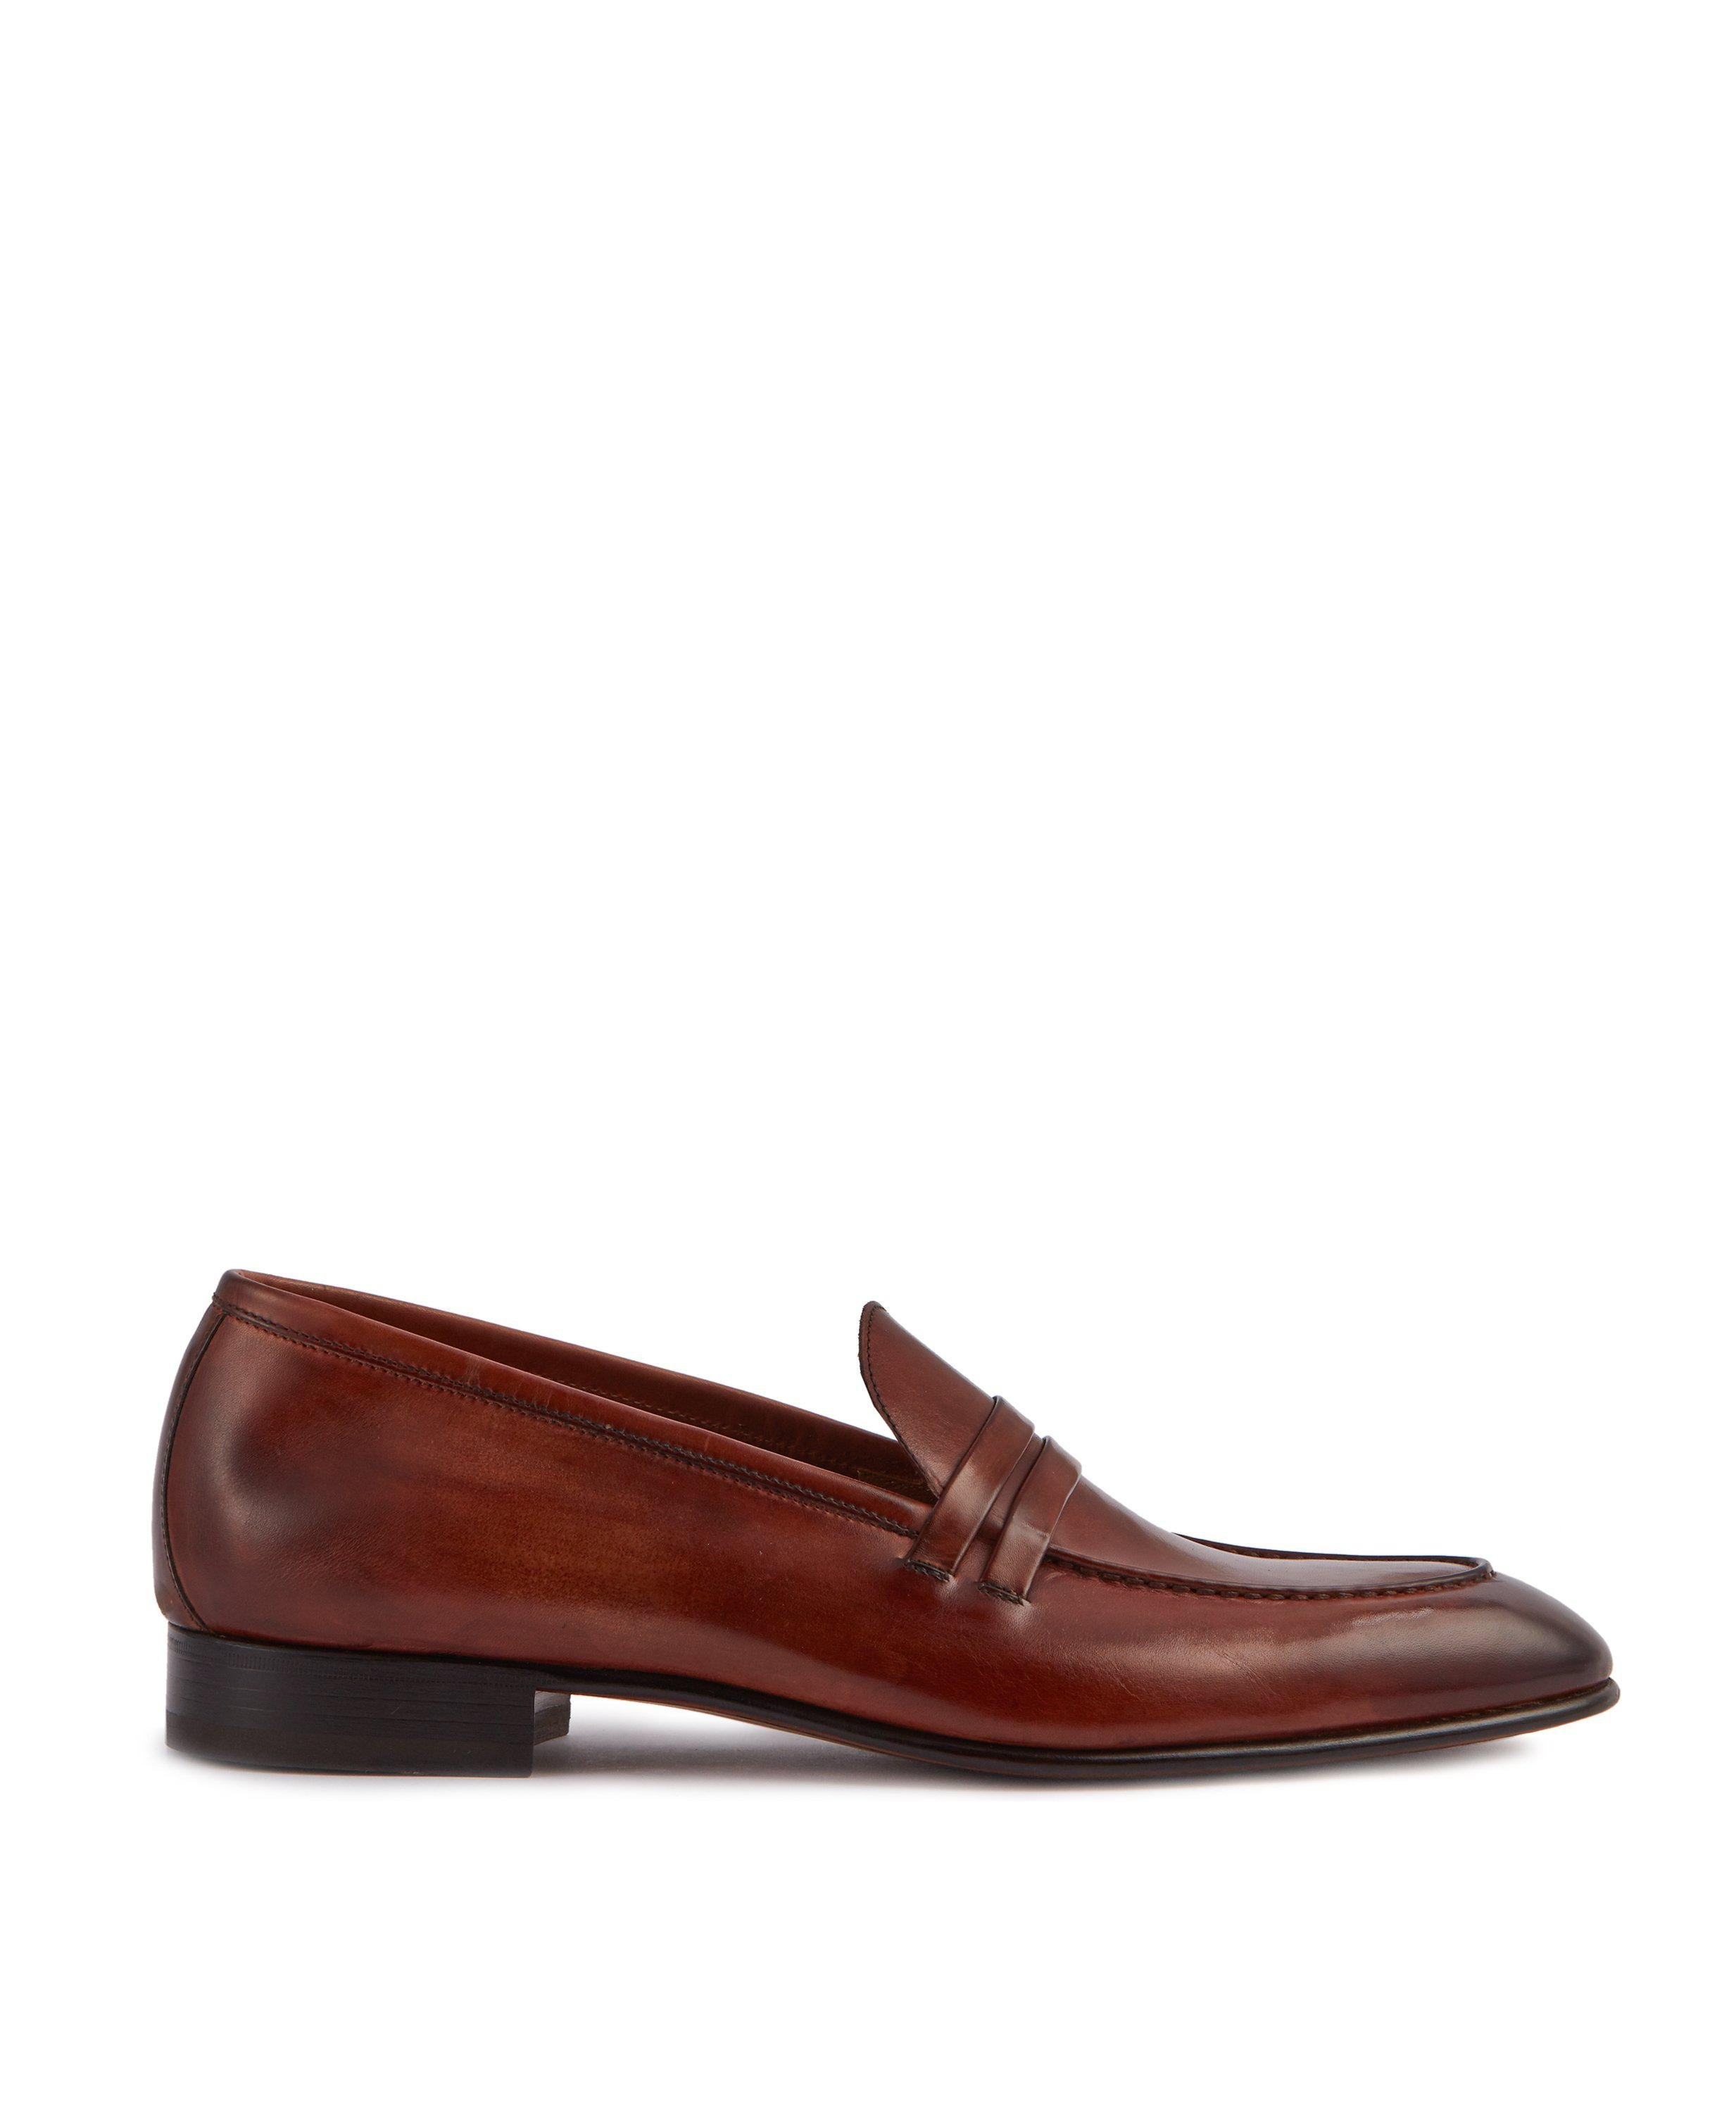 LUCA BROWN PENNY LOAFERS